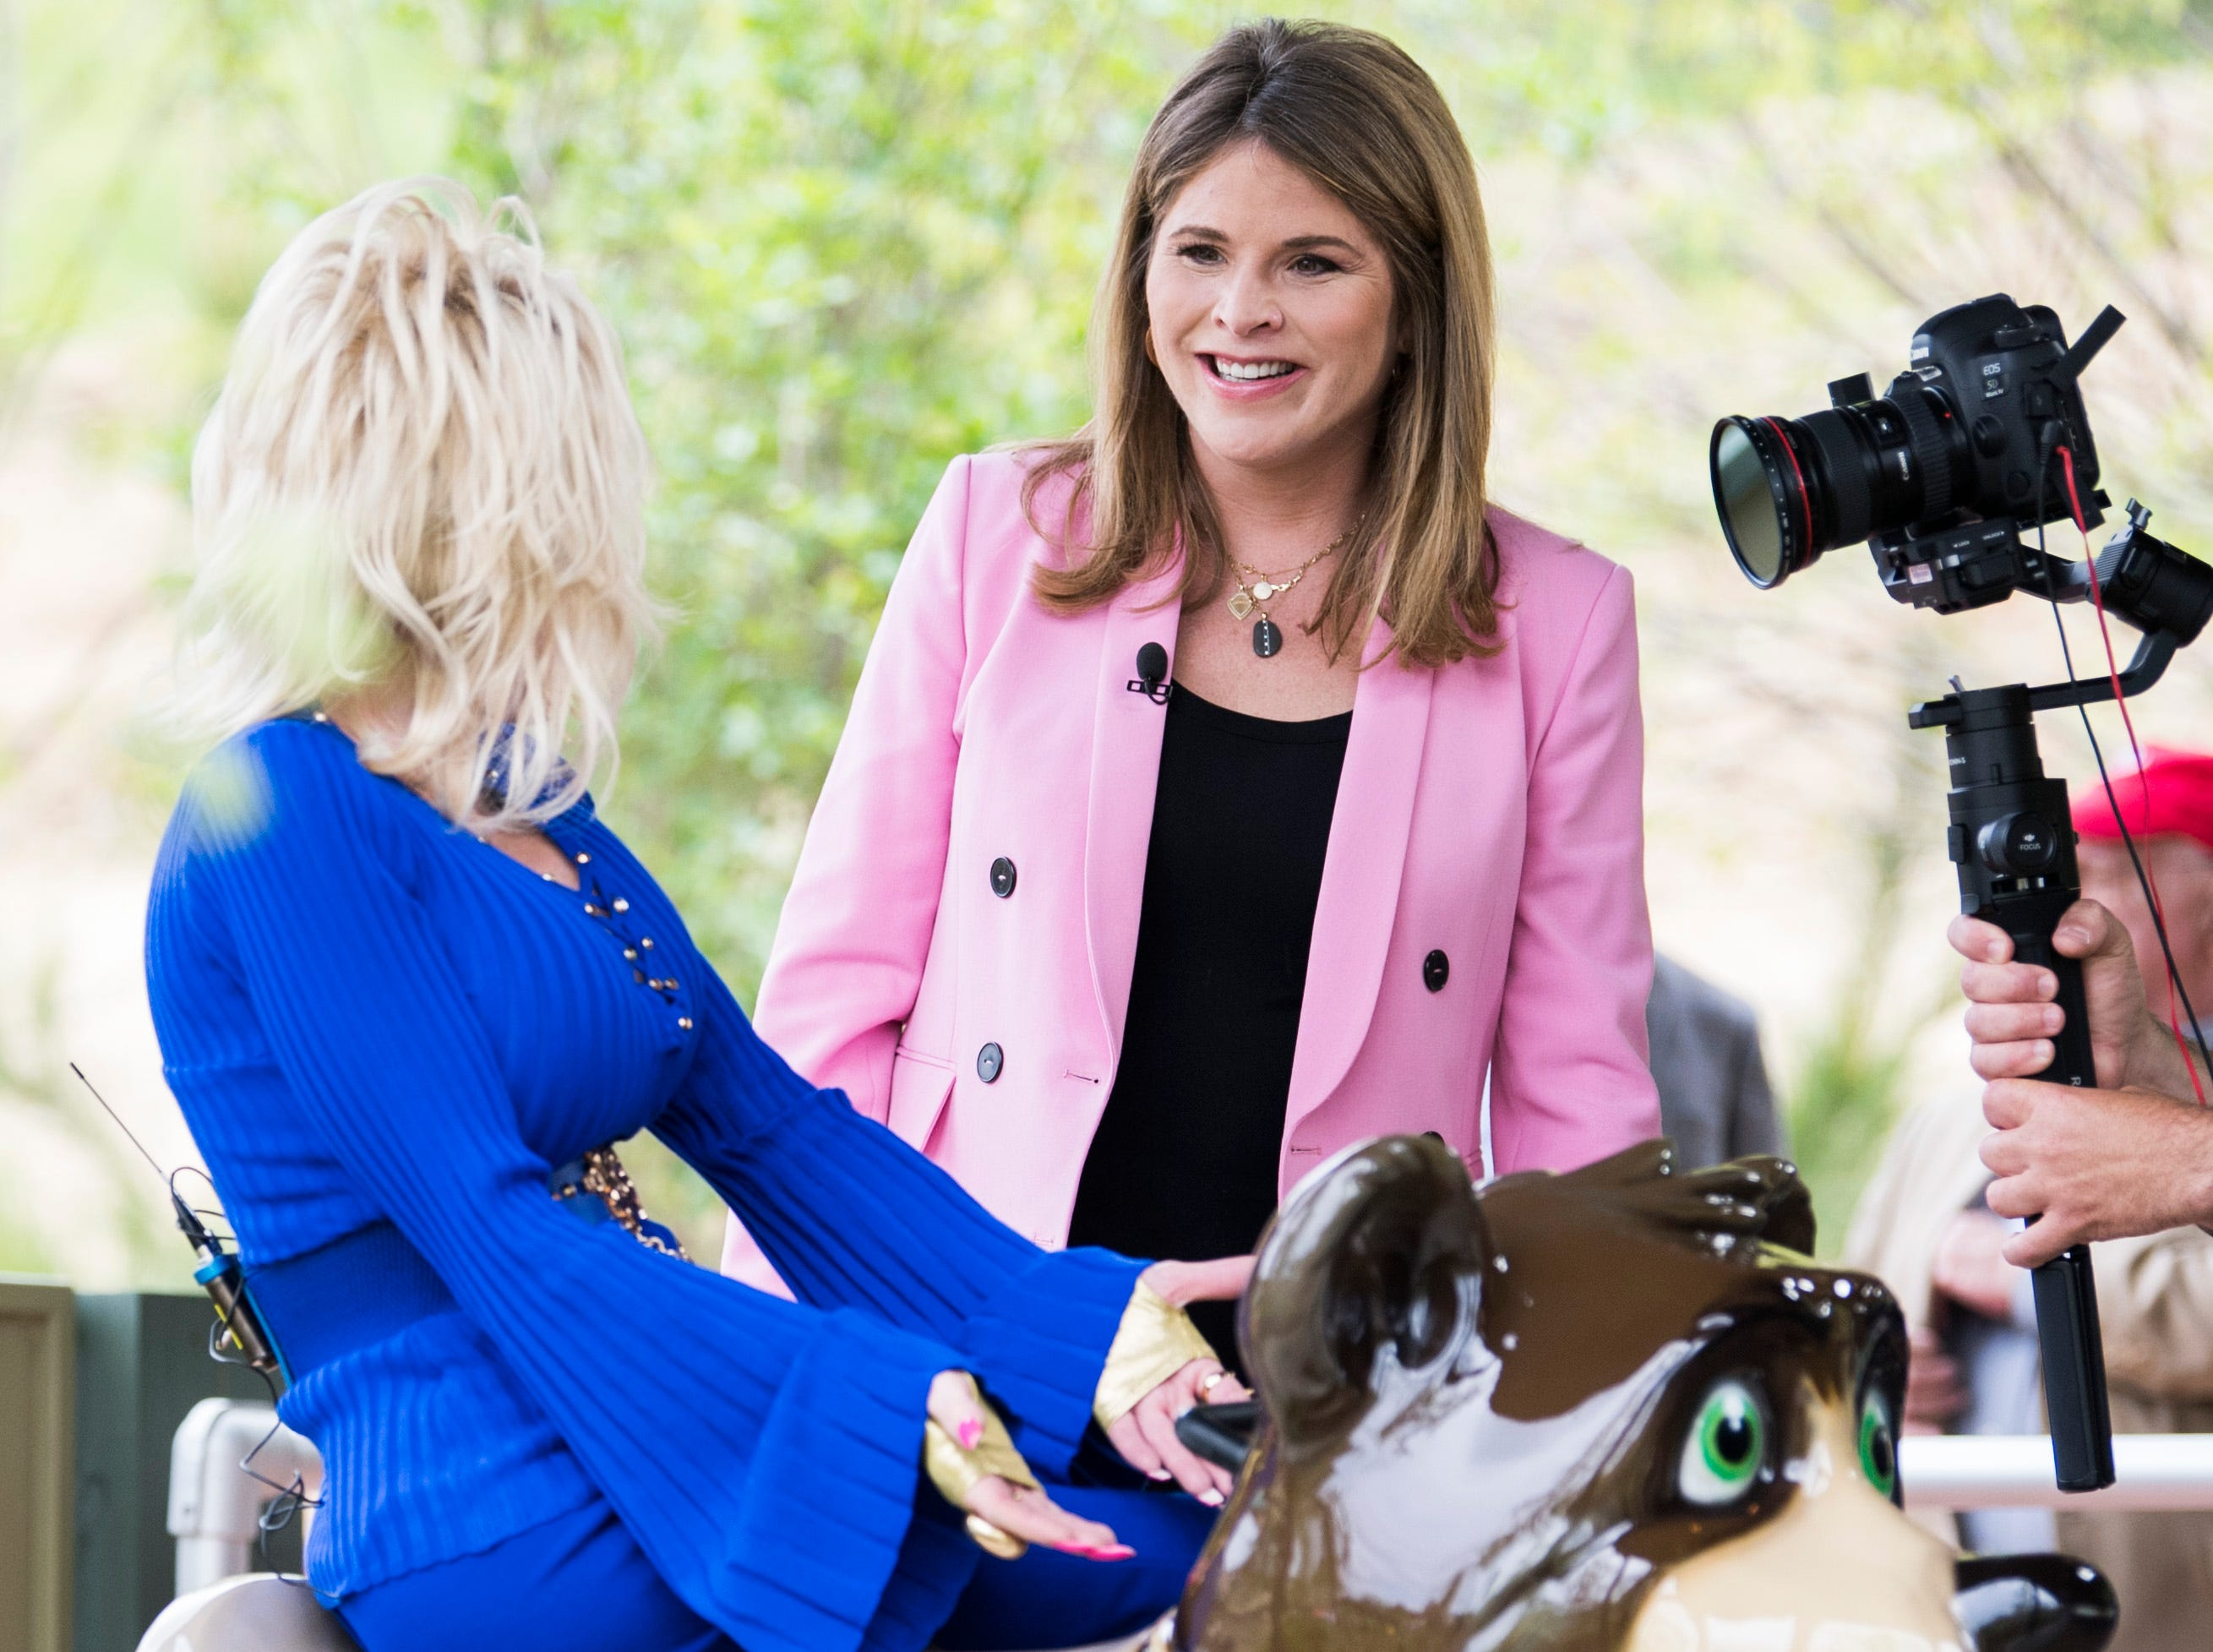 Dolly Parton sits on top of a bear at the Black Bear Trail ride with Jenna Bush Hager while filming a segment during the grand opening of Dollywood's new Wildwood Grove expansion on Friday, May 10, 2019.